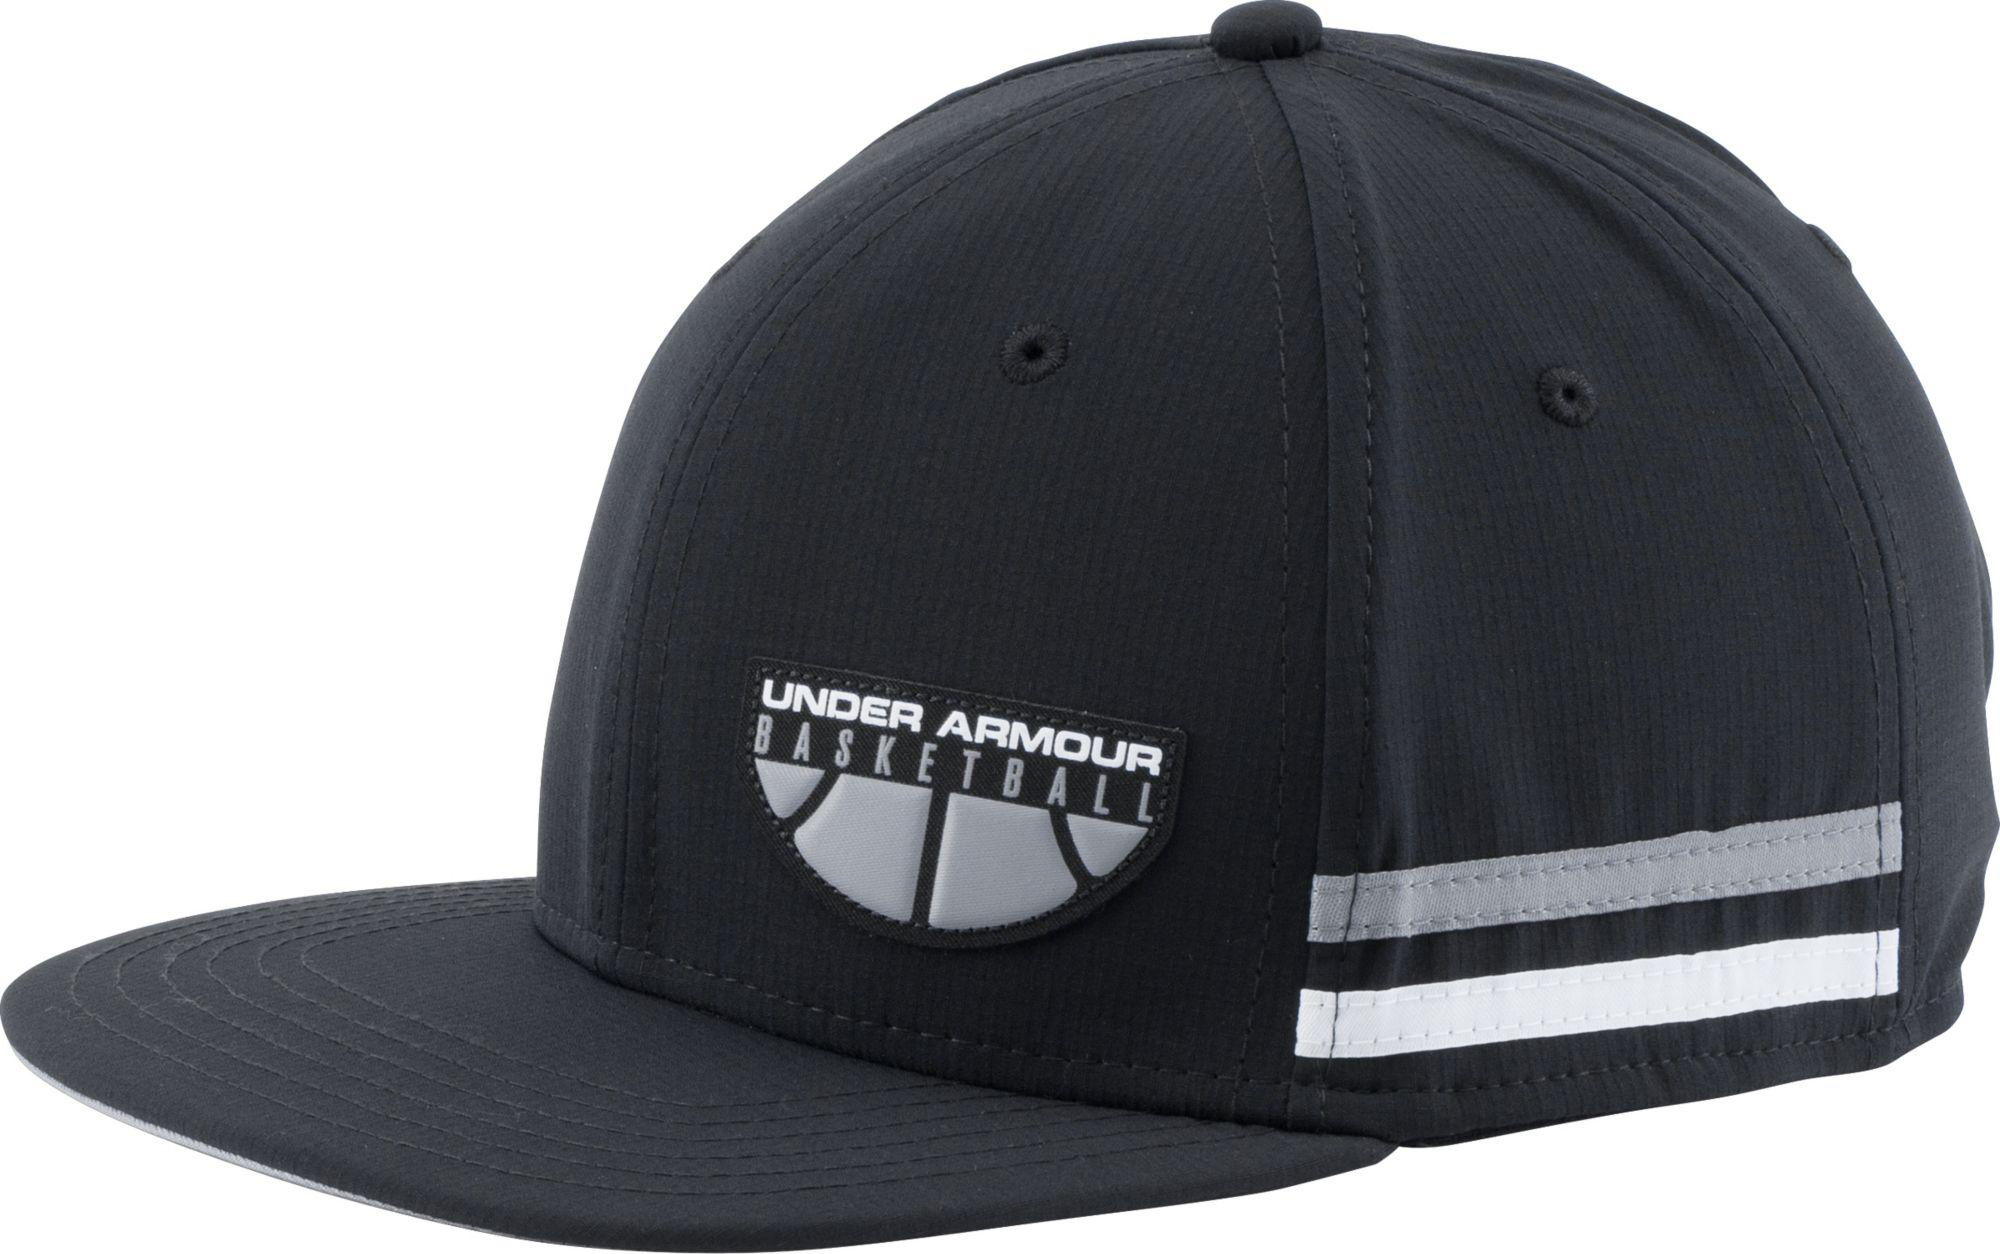 6bb353af00e Lyst - Under Armour Asketball Graphic Snapback Hat in Black for Men